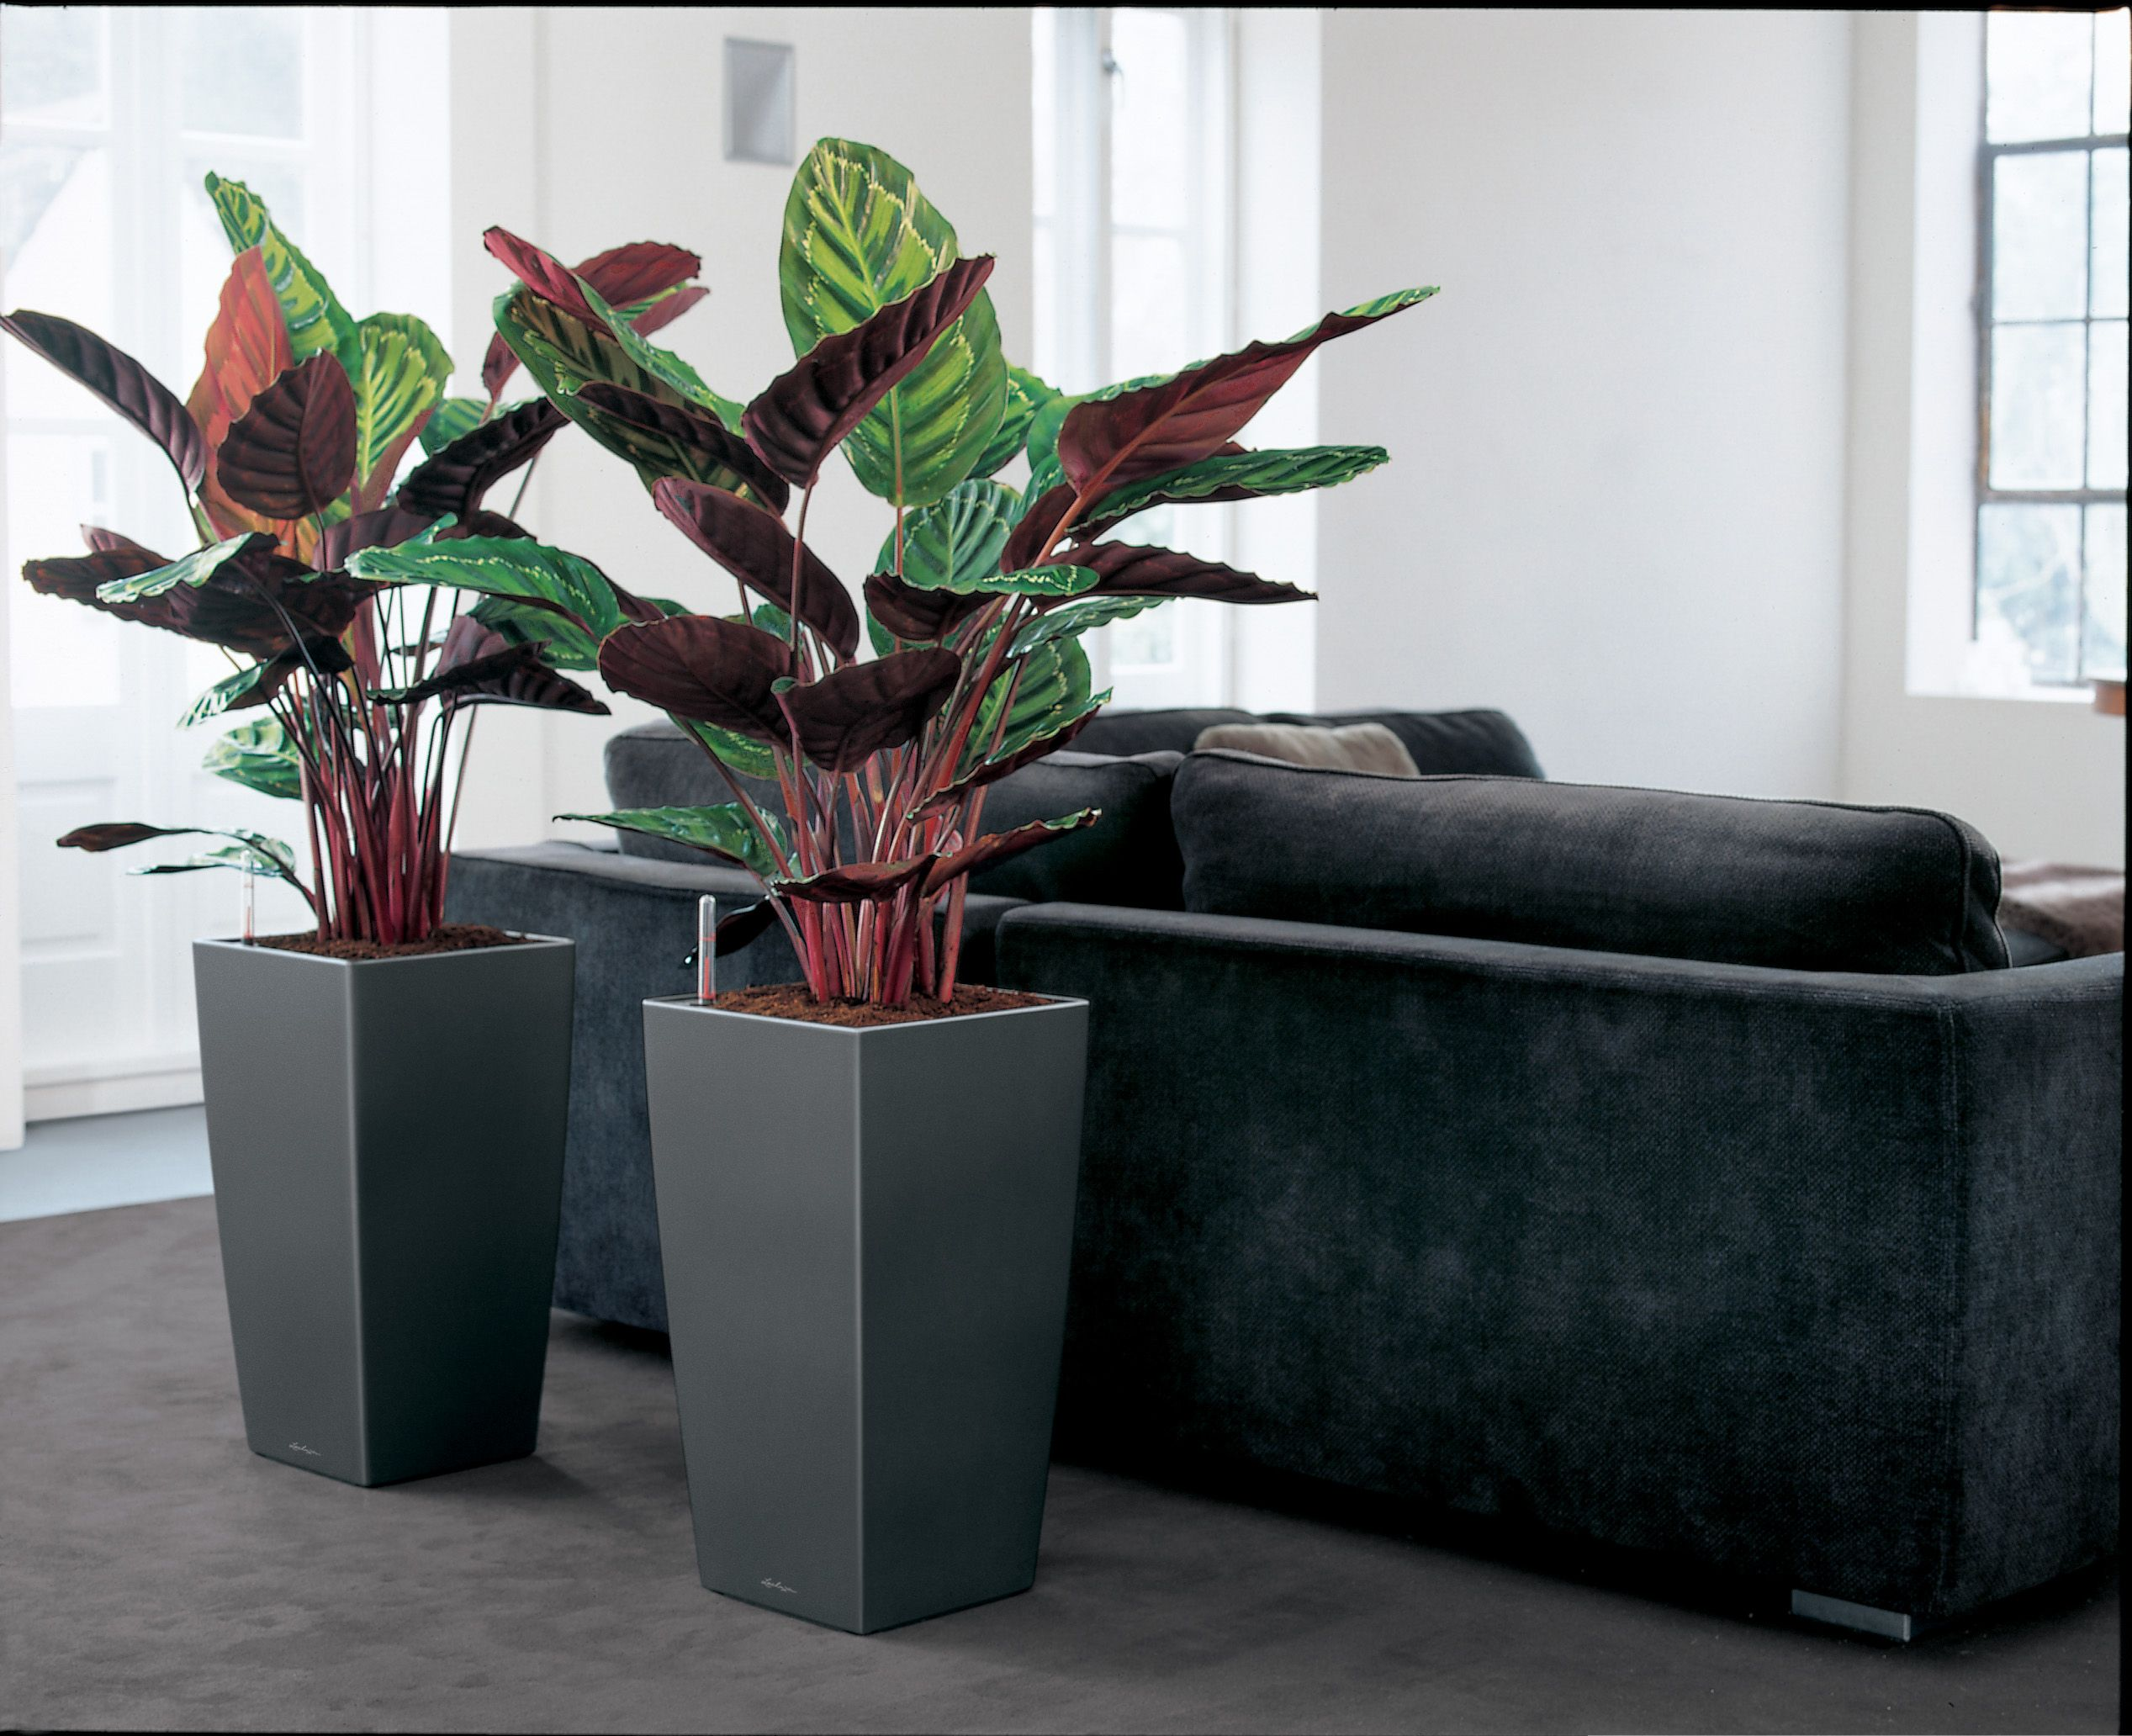 un calathea dans un pot lechuza plantes vertes xxl pinterest oxygene plante interieur et. Black Bedroom Furniture Sets. Home Design Ideas